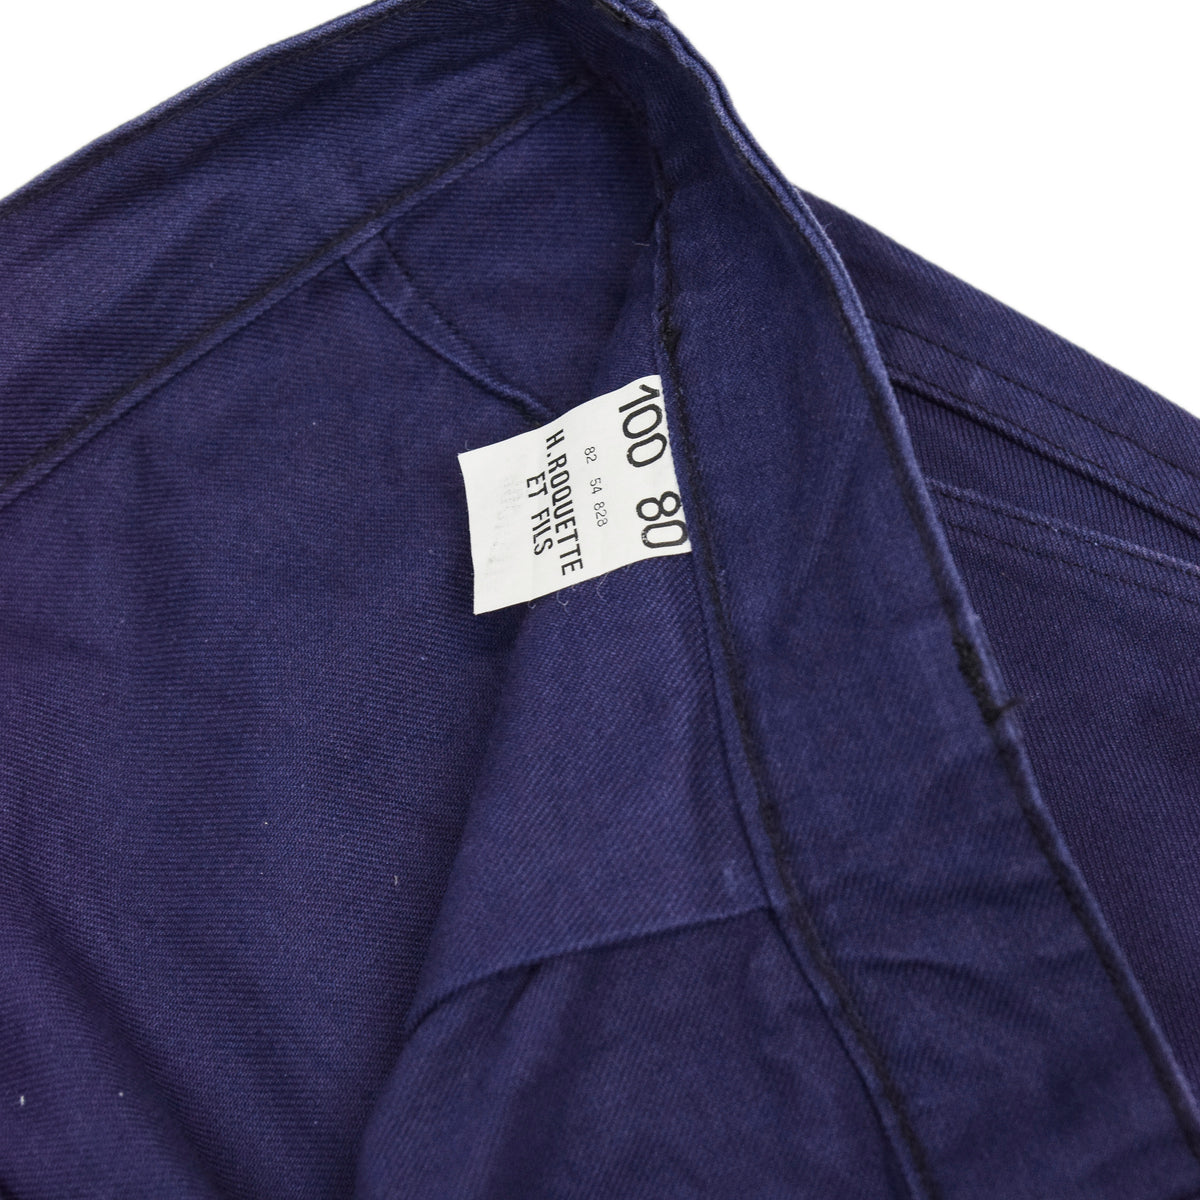 Vintage Indigo Blue French Work Pant Utility Trousers Made in France 38 W 30 L inner label